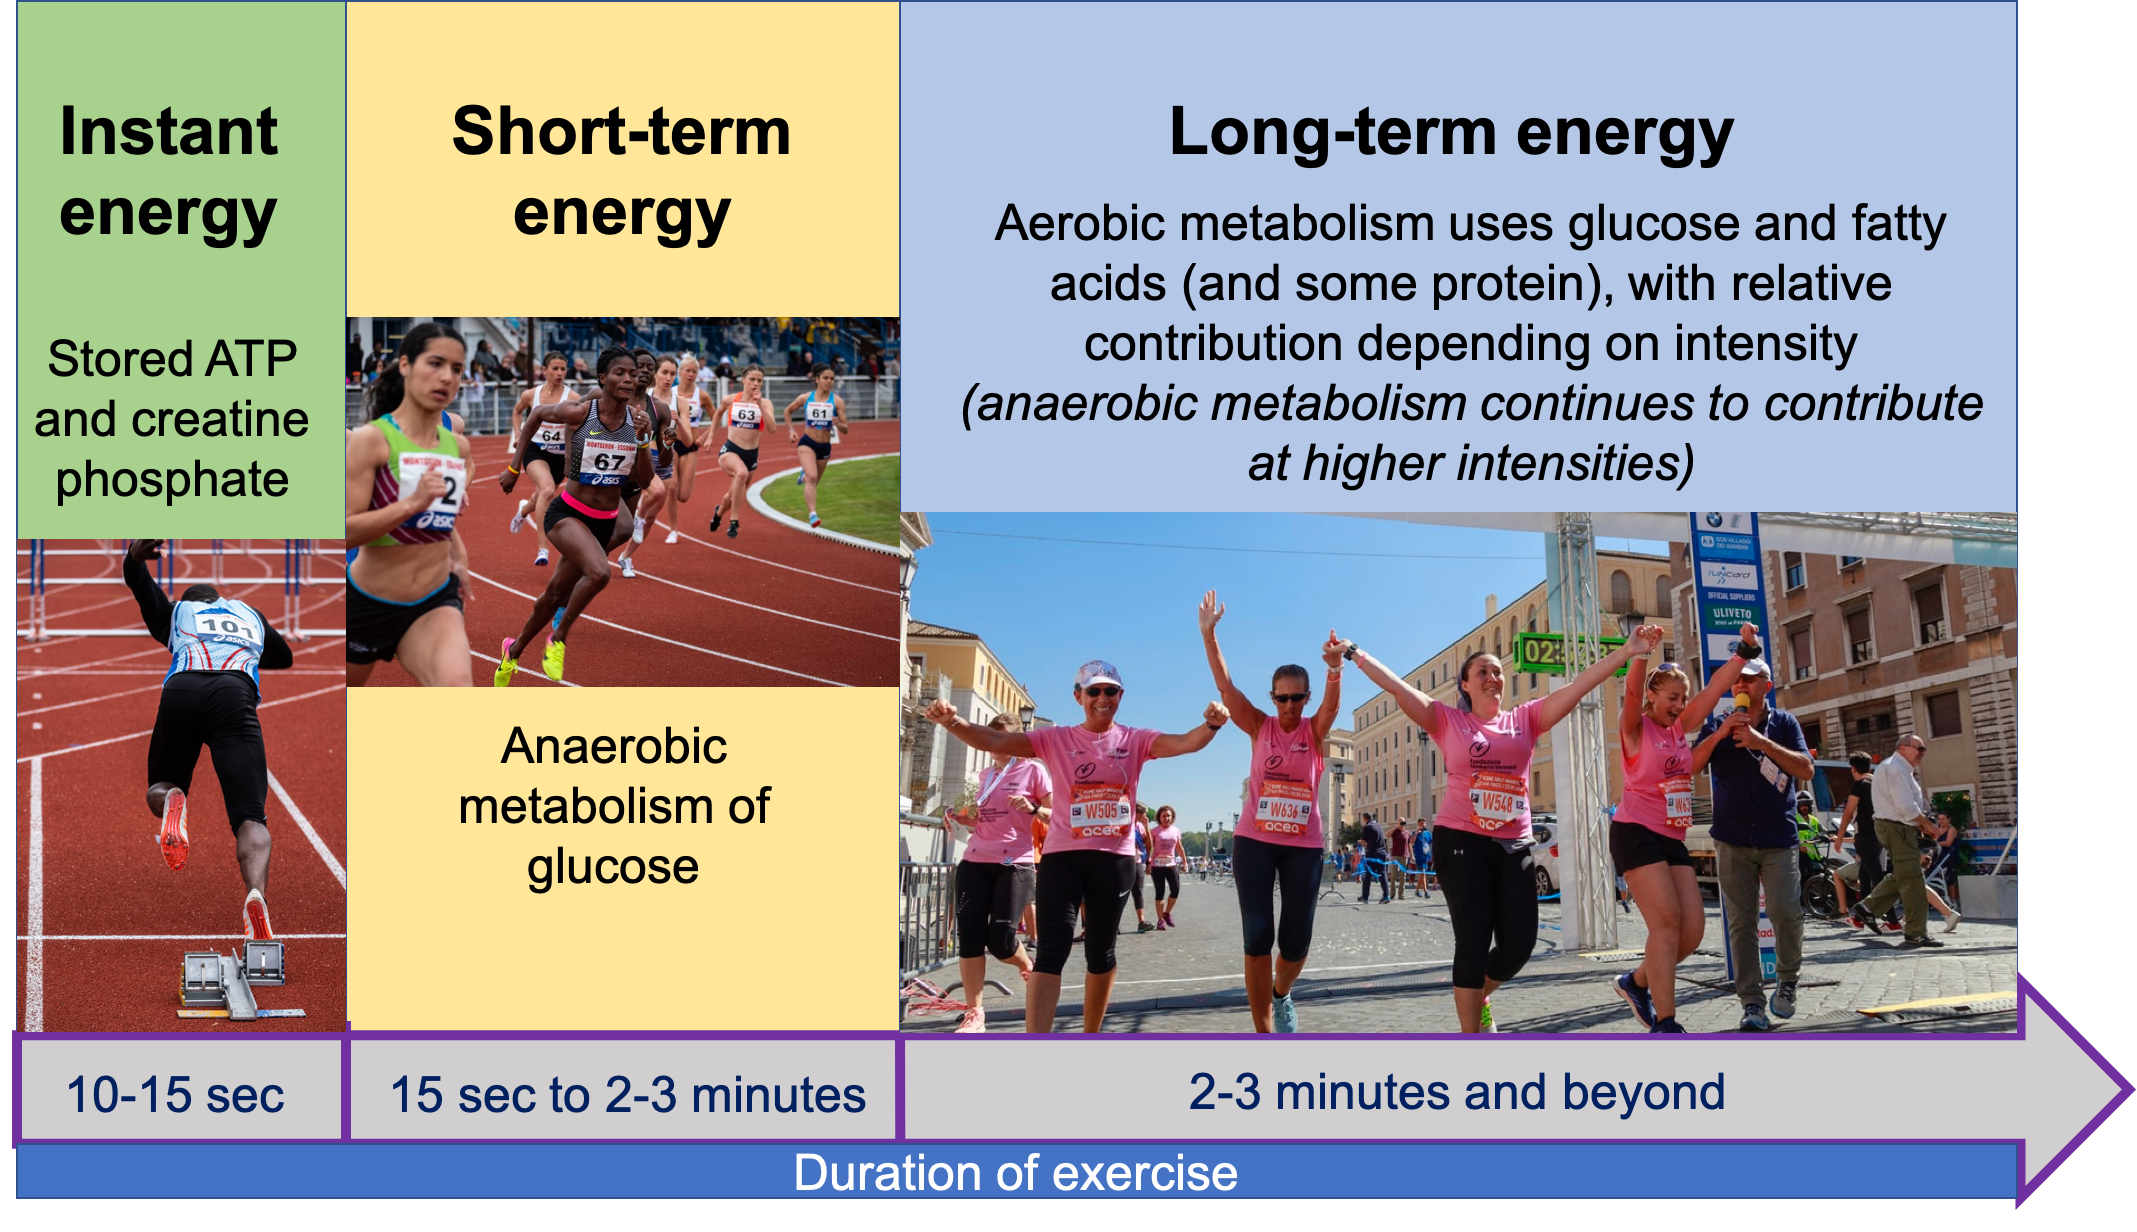 The image shows 3 main energy systems used to fuel exercise and how they change with duration of exercise. The left panel shows instant energy coming from stored ATP and creatine phosphate for the first 10-15 seconds of exercise, illustrated with a photo of a man leaving the starting blocks on a track. The middle panel shows short-term energy coming from anaerobic metabolism of glucose, fueling 15 seconds to 2-3 minutes of exercise, illustrated by a photo of women rounding the track during a race. The right panel shows long-term energy fueled by aerobic metabolism of glucose, fatty acids, and protein, with relative contribution depending on intensity and with anaerobic metabolism continuing to contribute at higher intensities. This panel is illustrated by a group of women crossing the finish line at a half marathon.